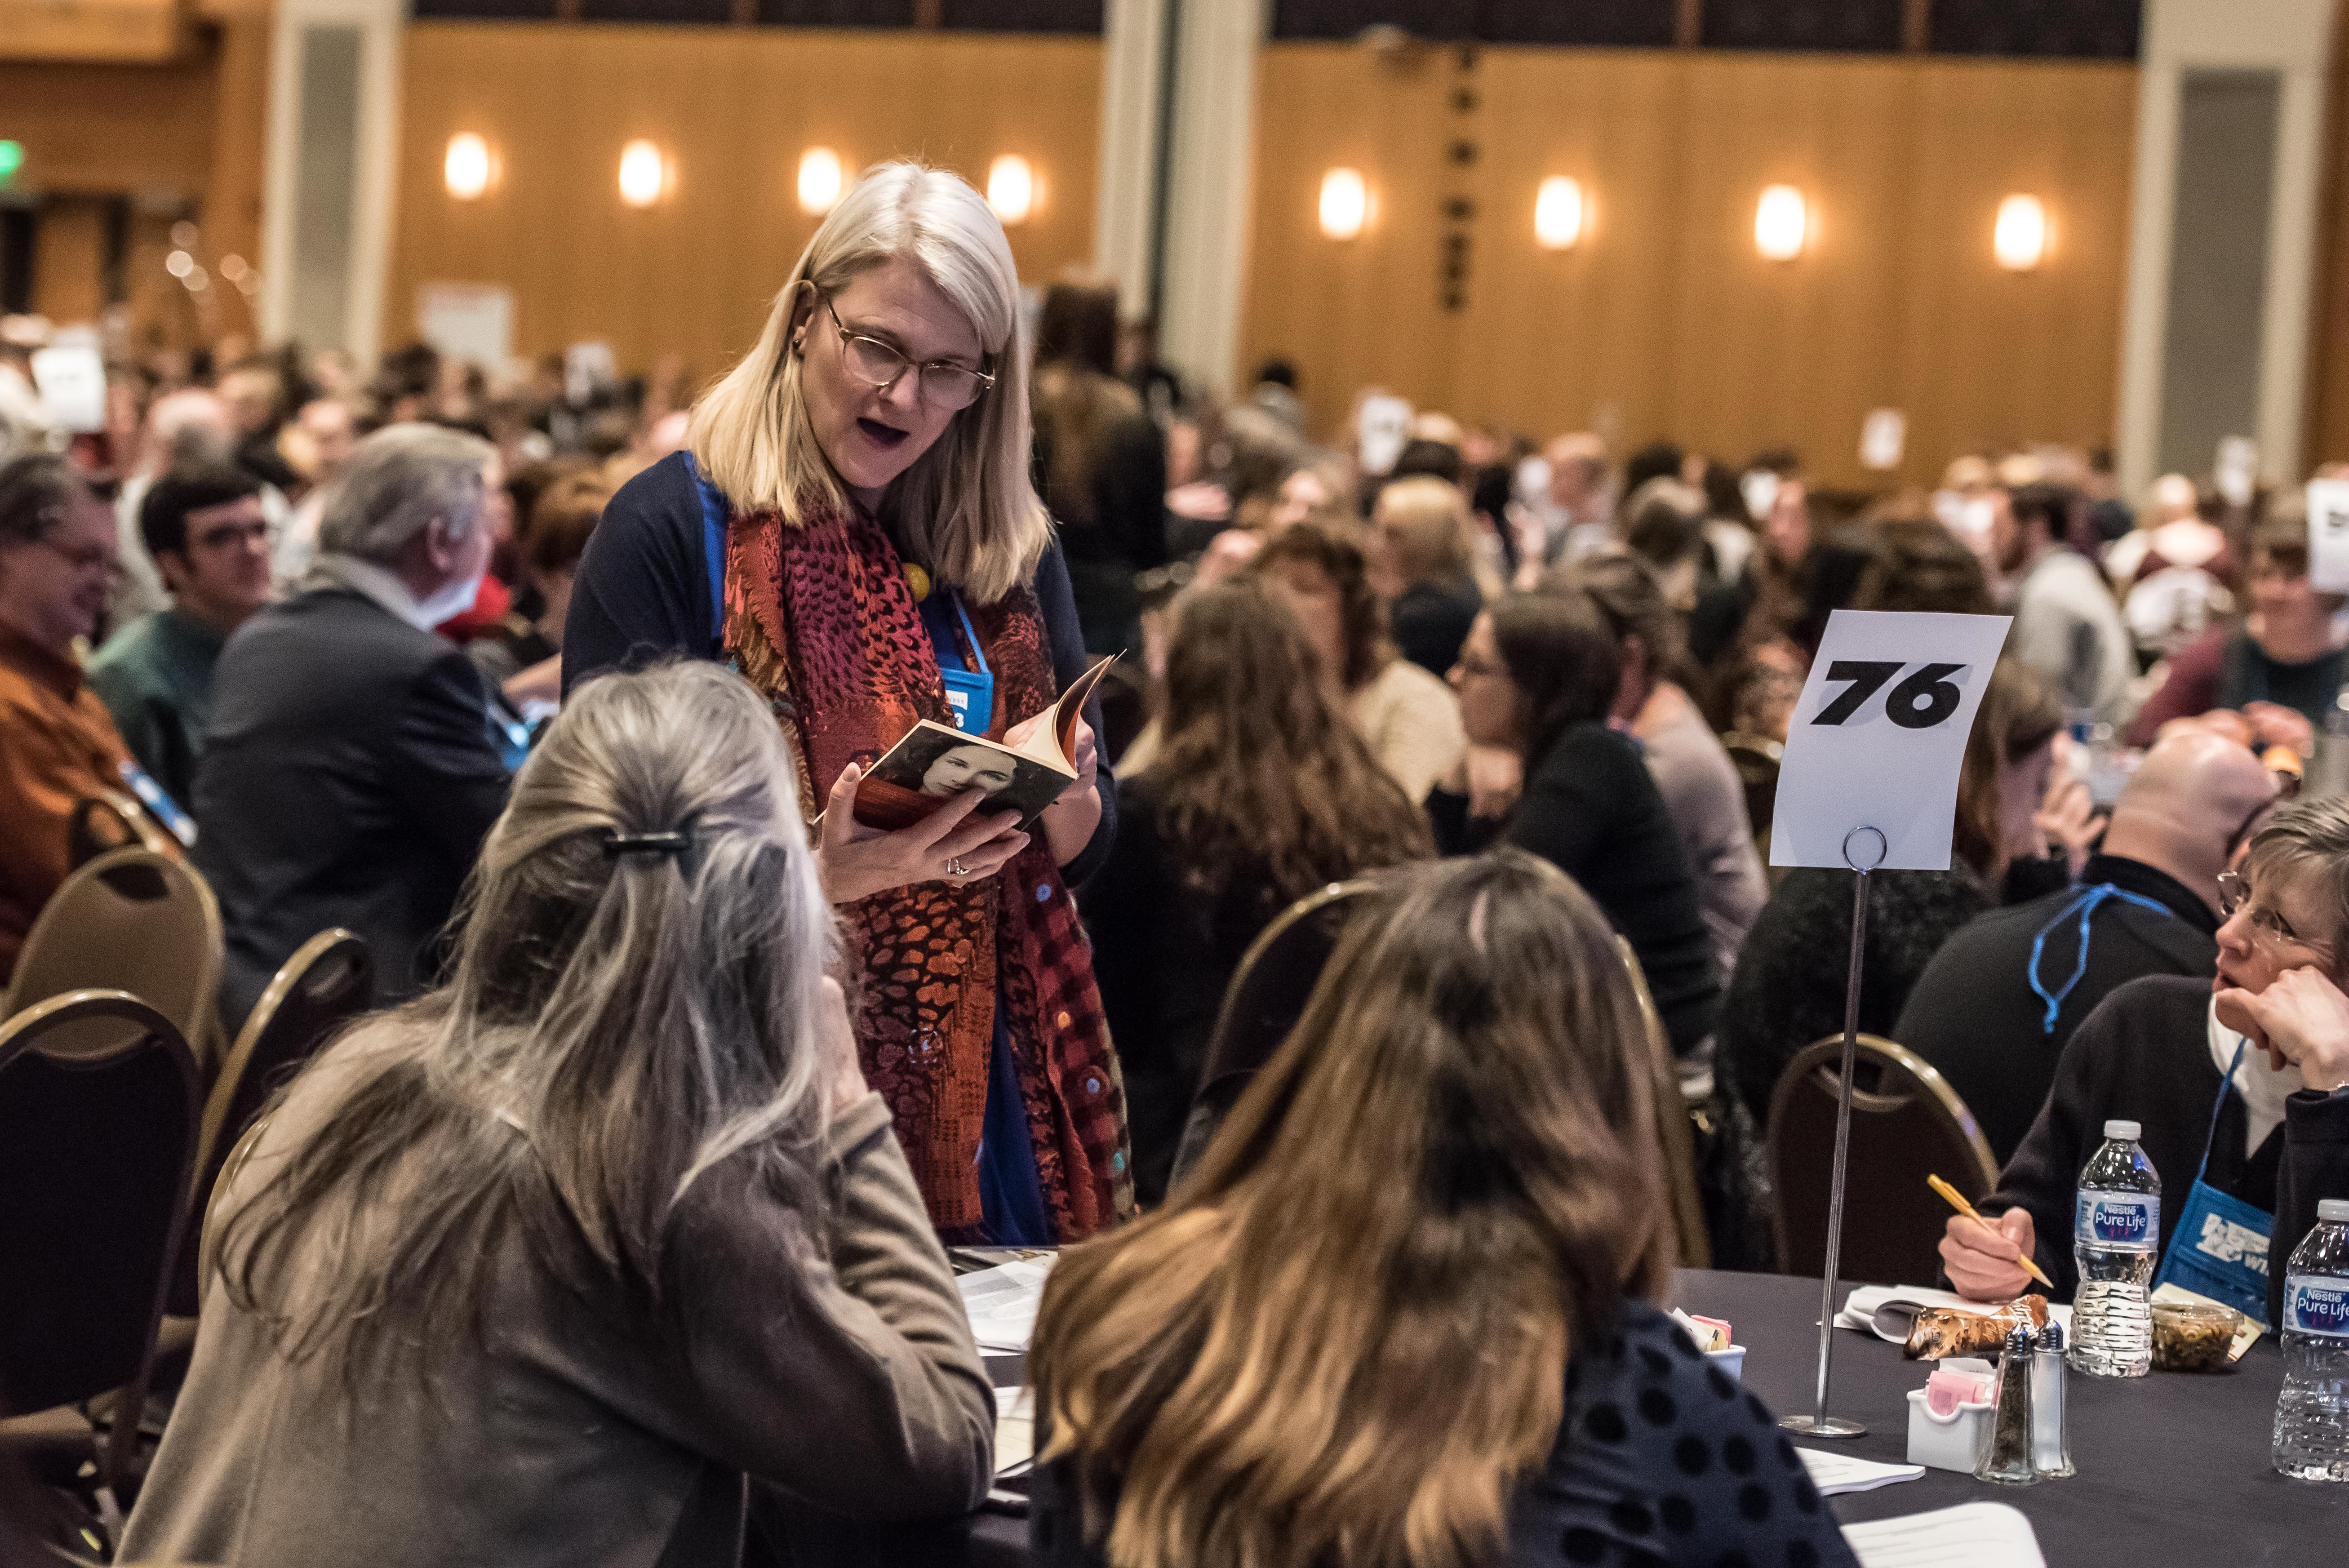 Booksellers lunched with reps to learn about new titles from Wi13's publisher sponsors.